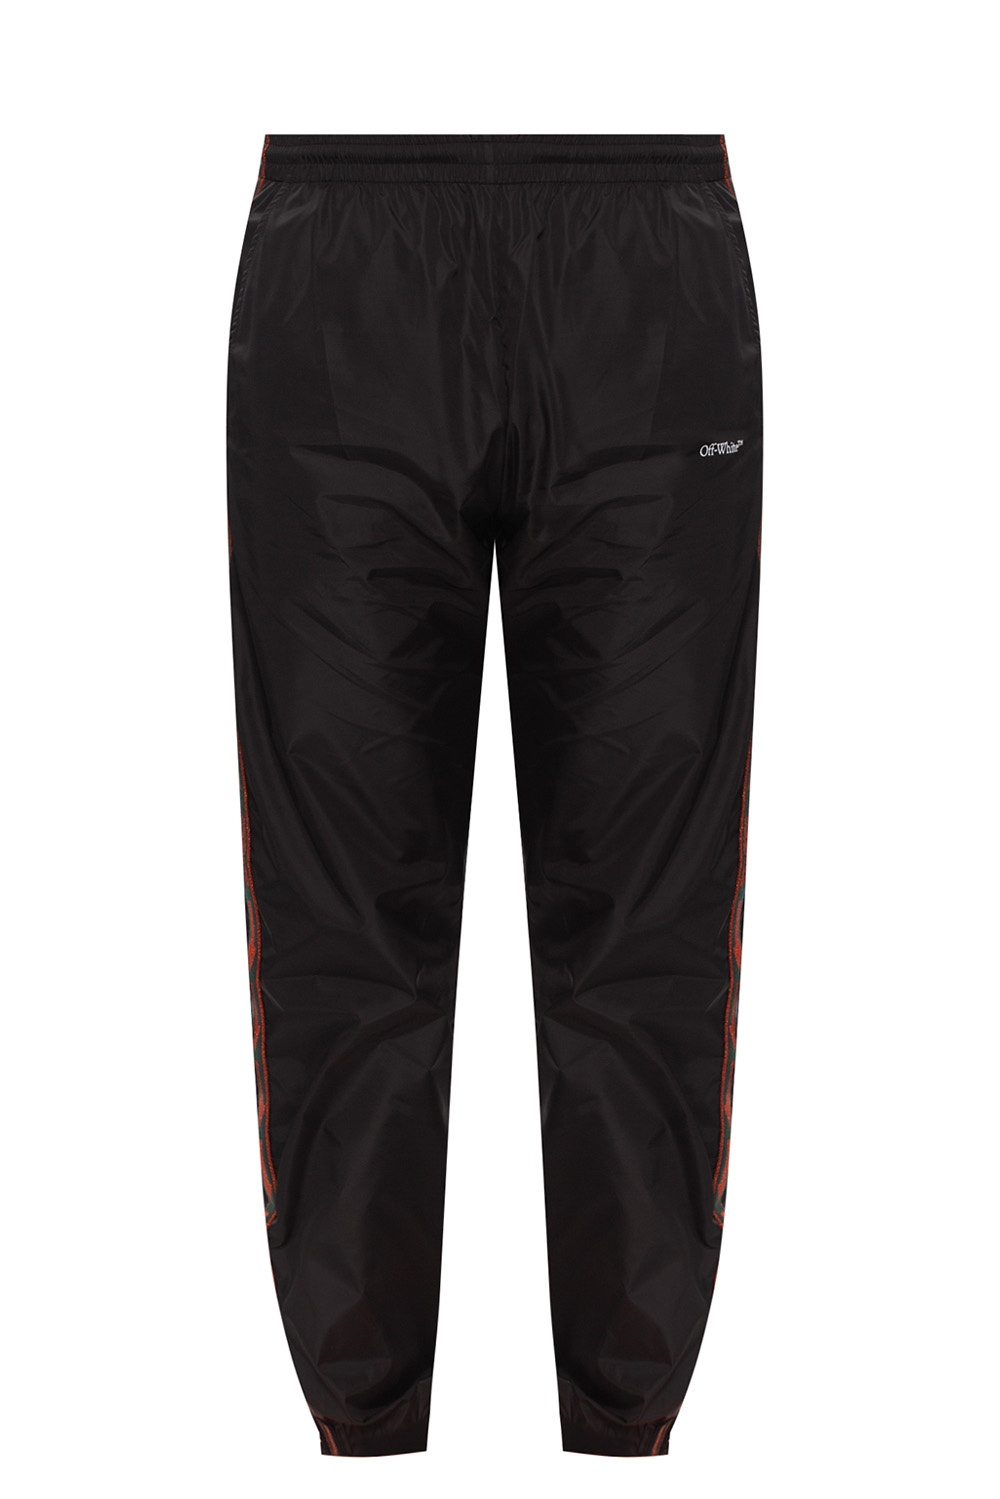 Off-White Track pants